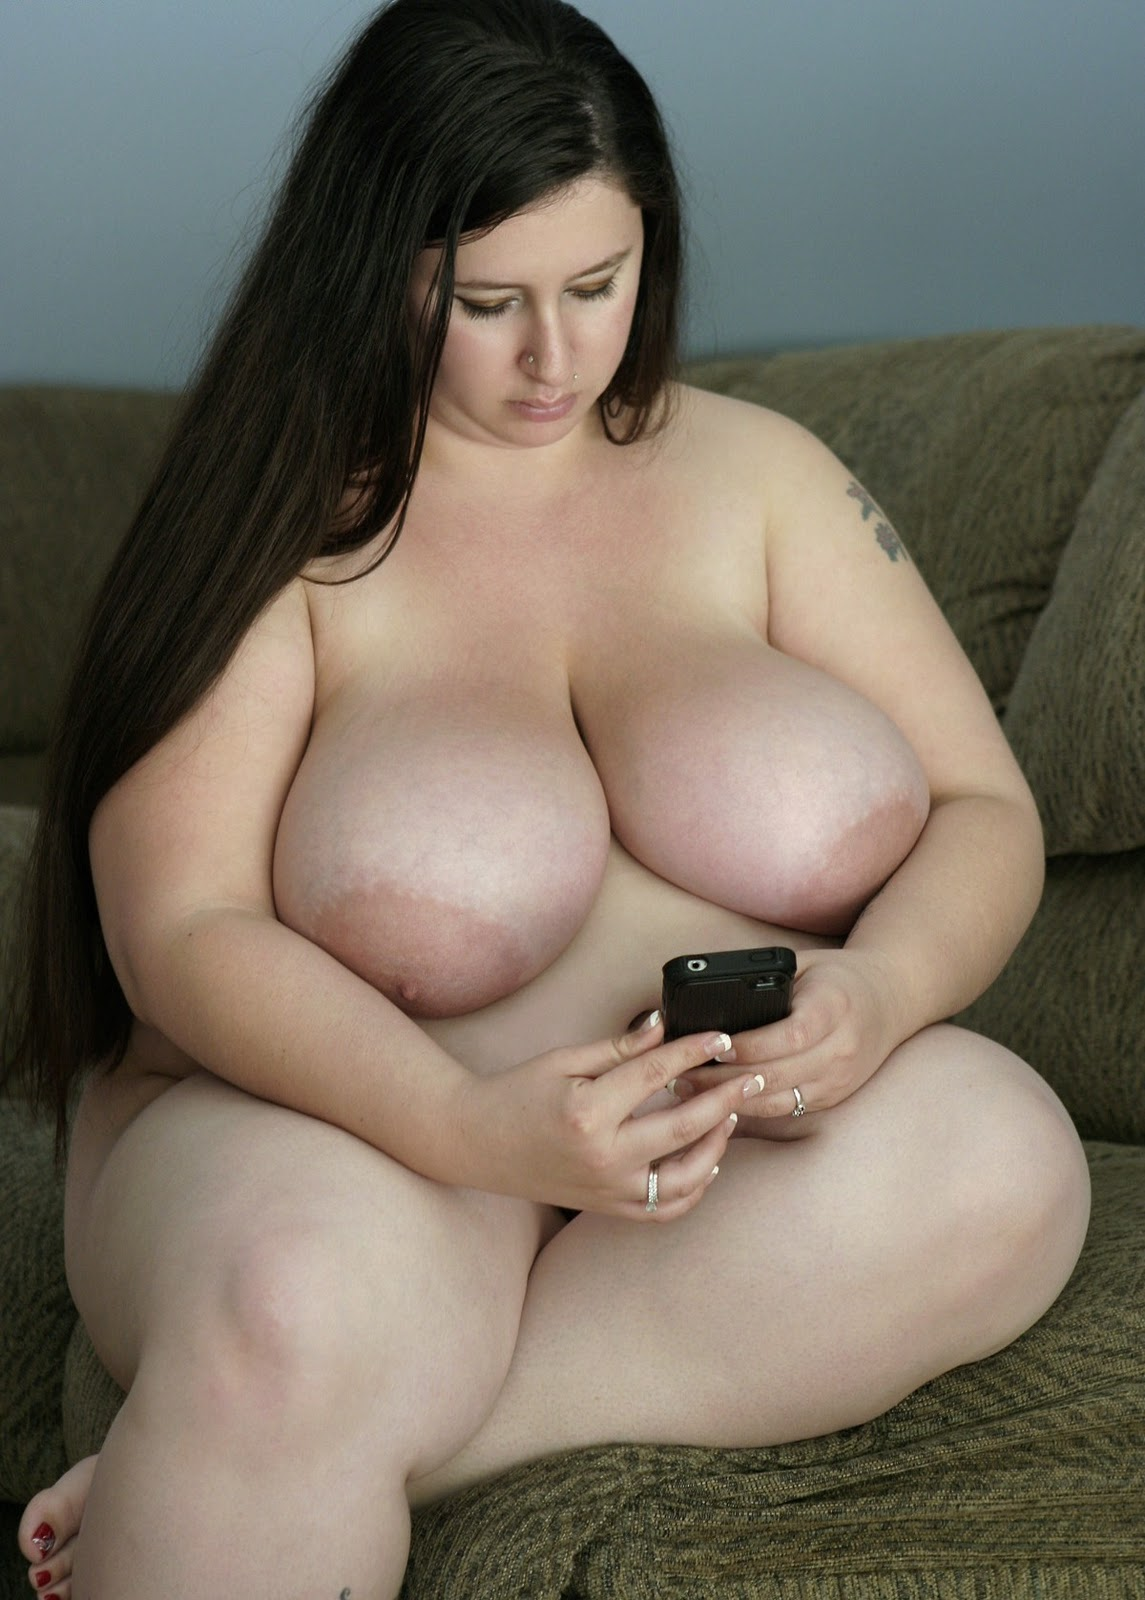 chubby ass woman naked free - porn archive